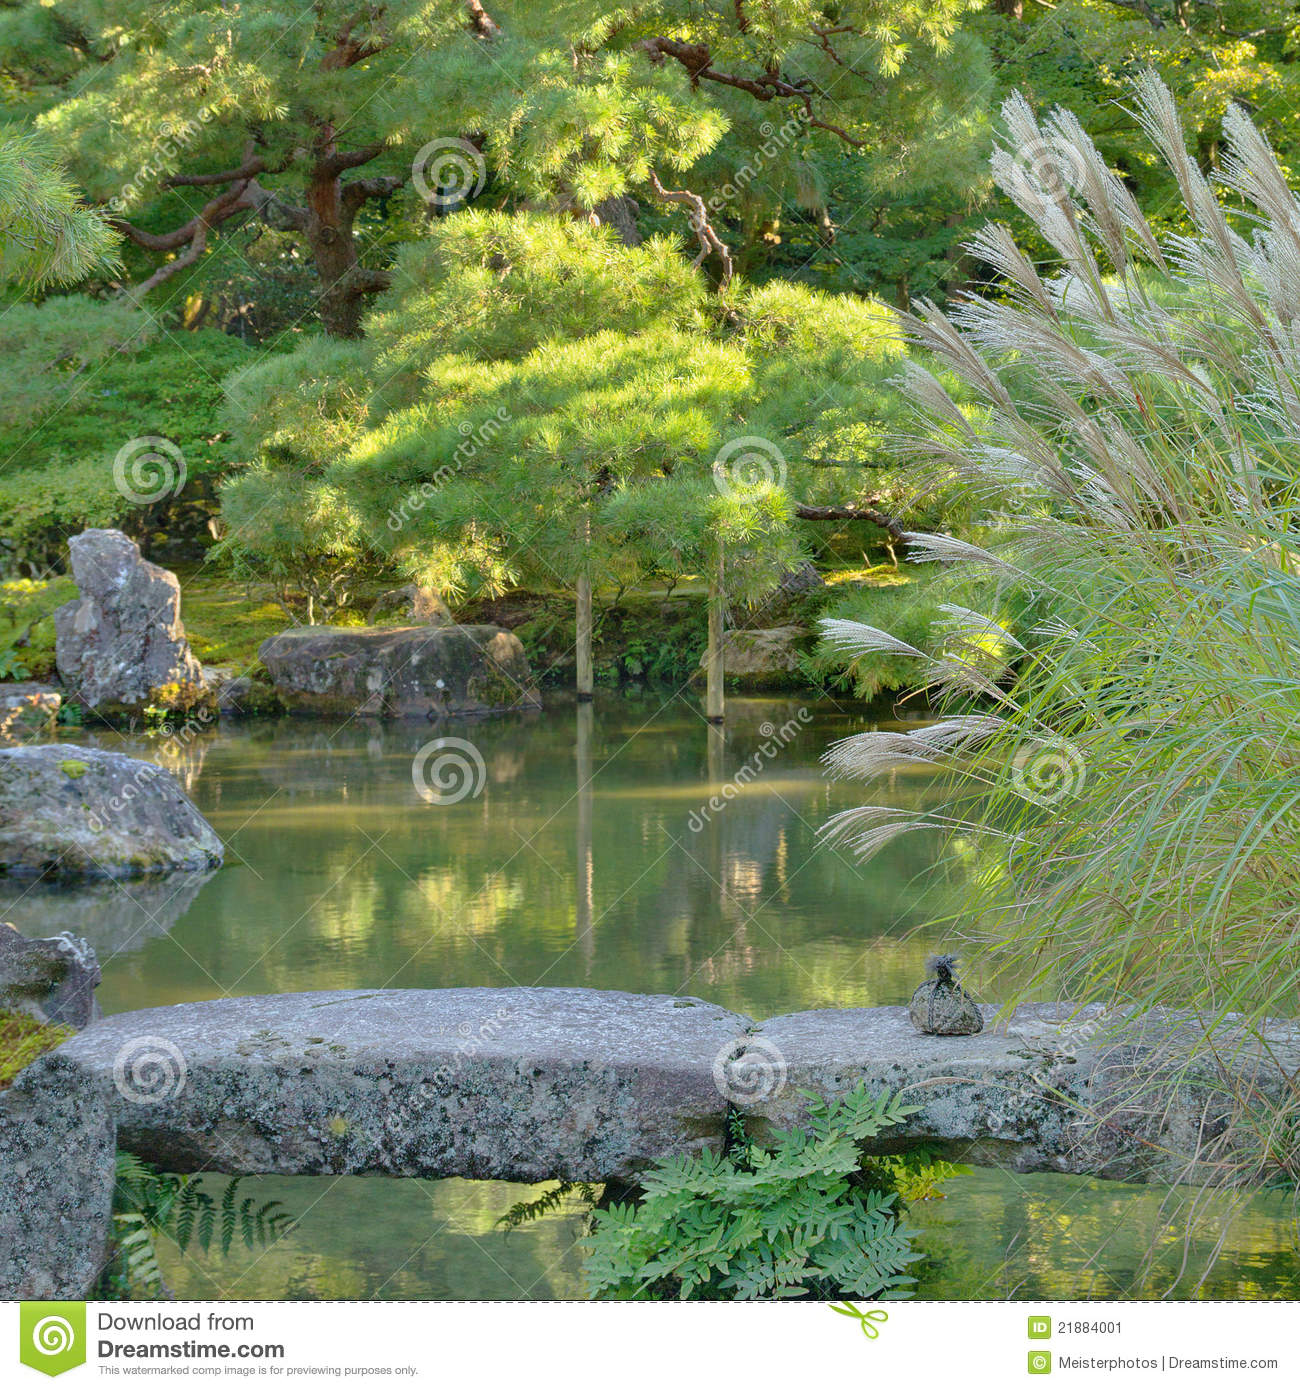 Japanese Garden Stone Bridge japanese garden with pond and stone bridge stock image - image